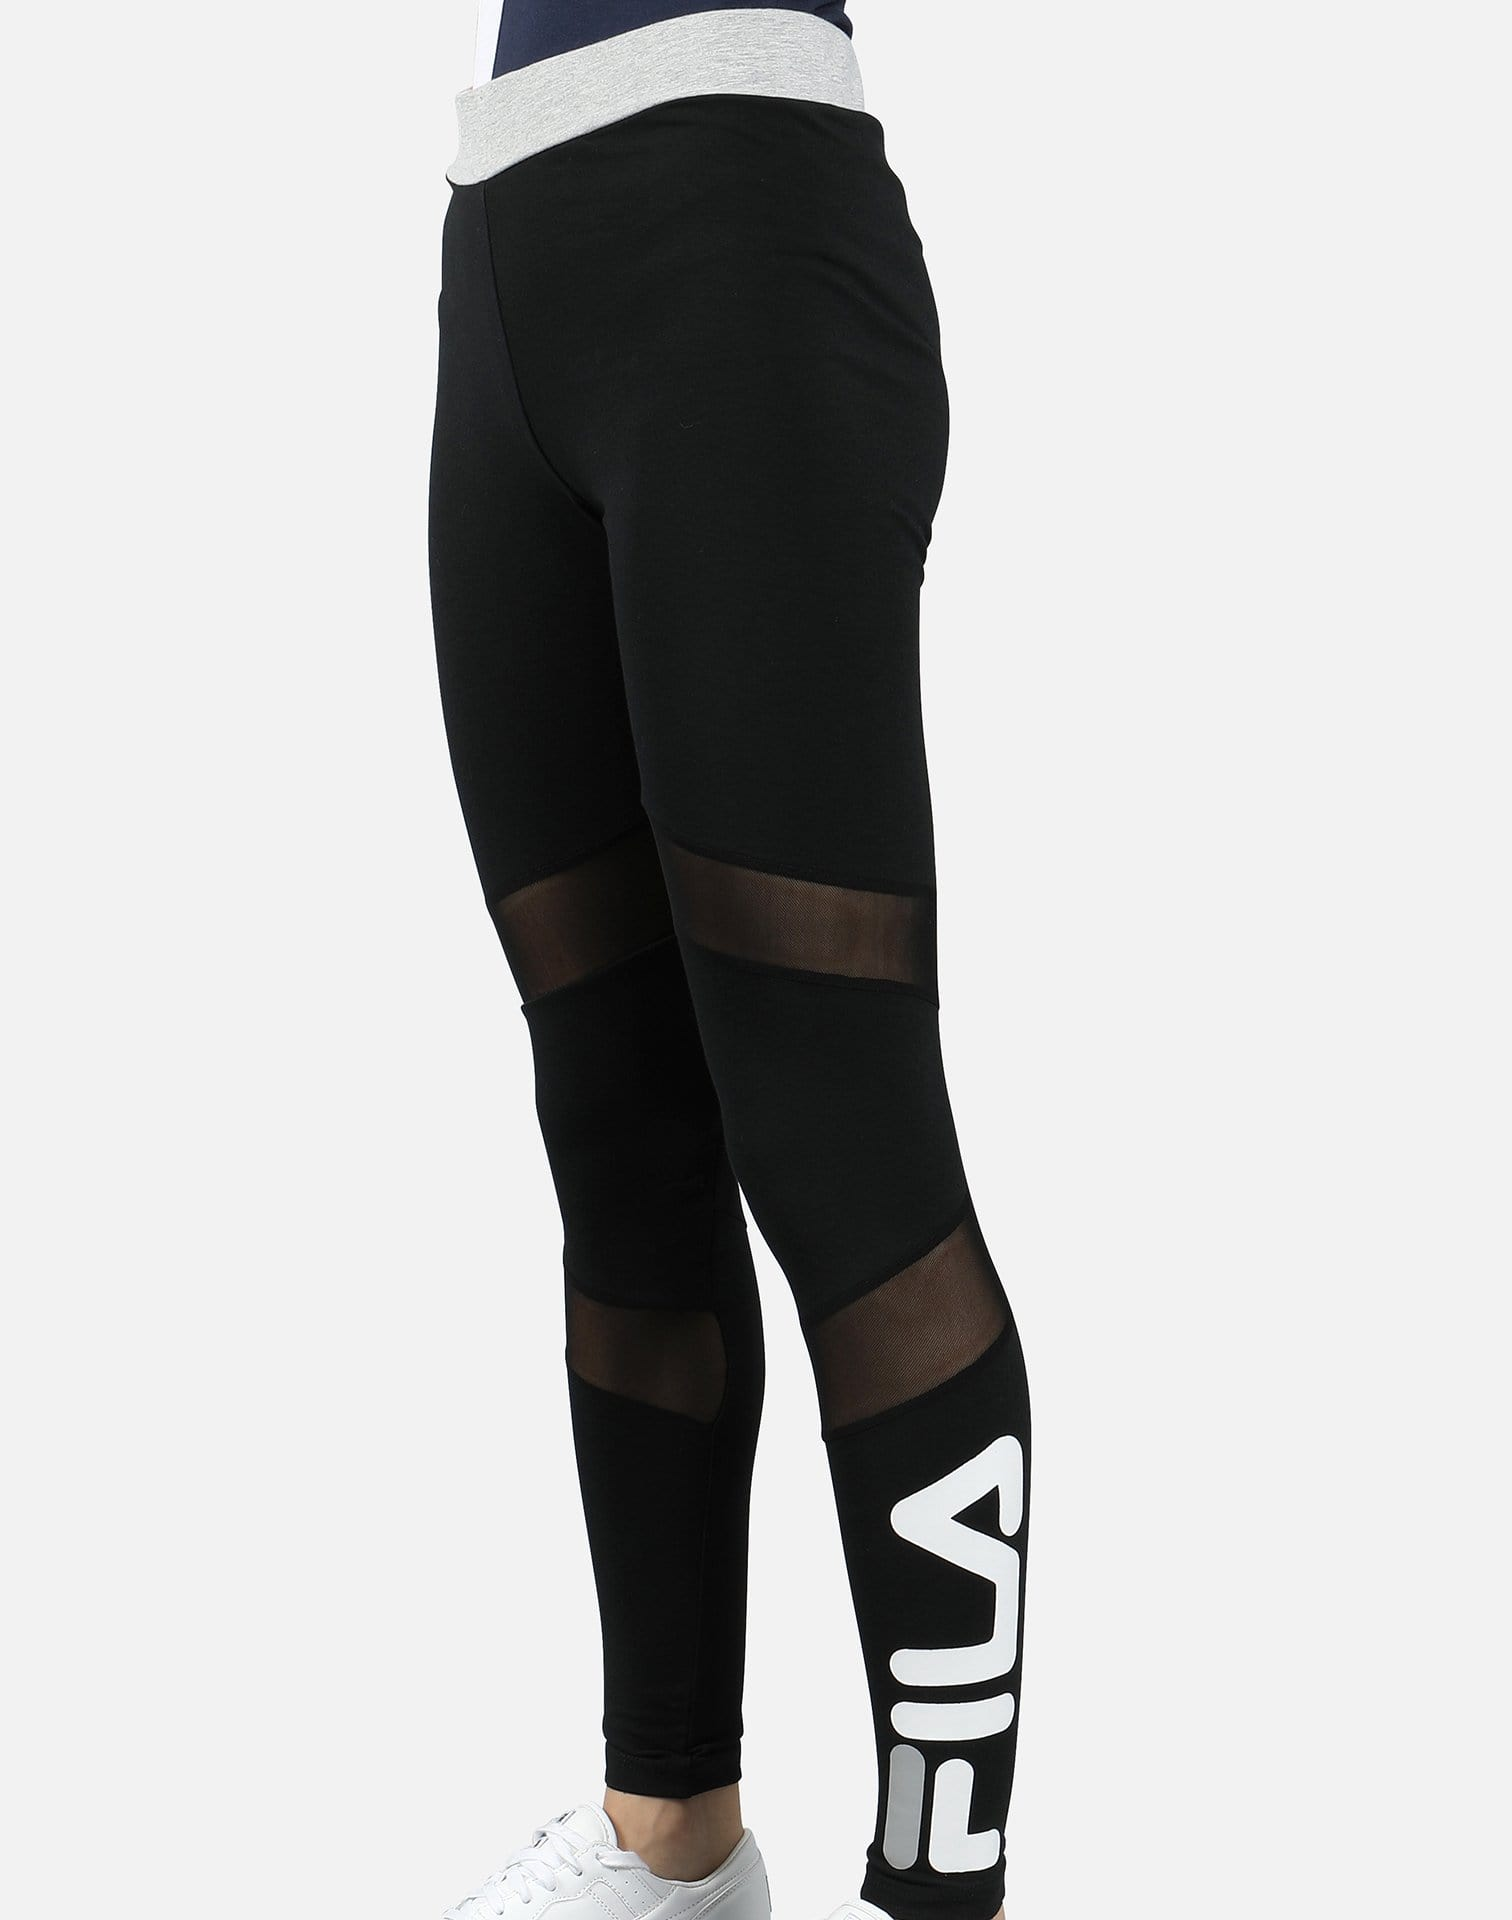 FILA Women's Amara Leggings